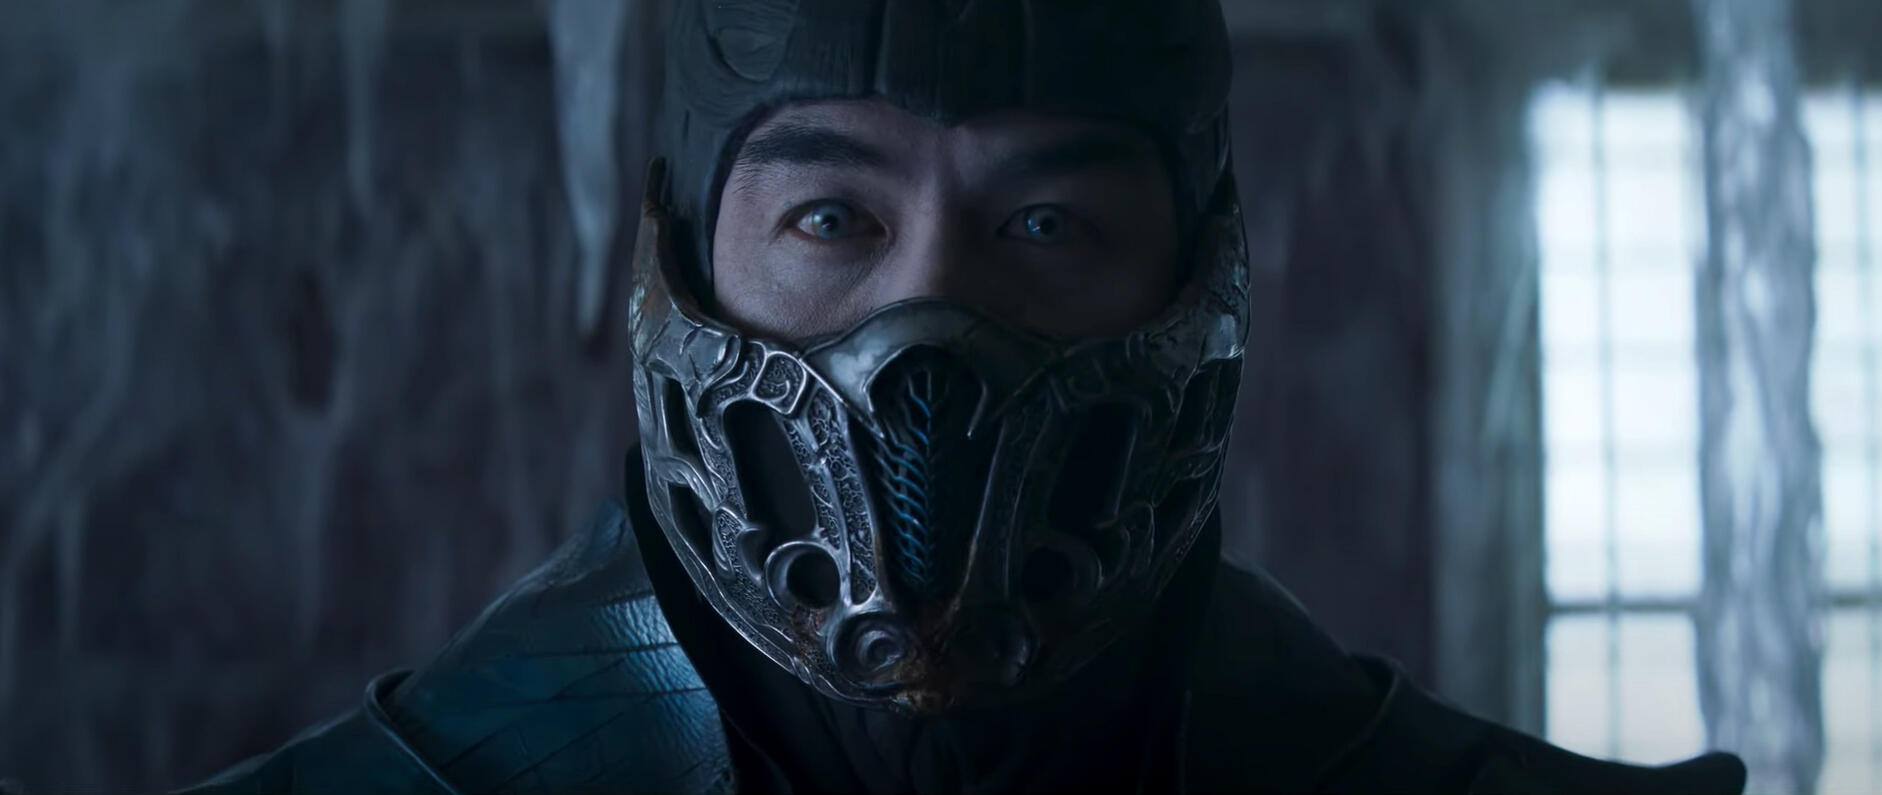 Mortal Kombat: Video compares the movie's fatalities to the games